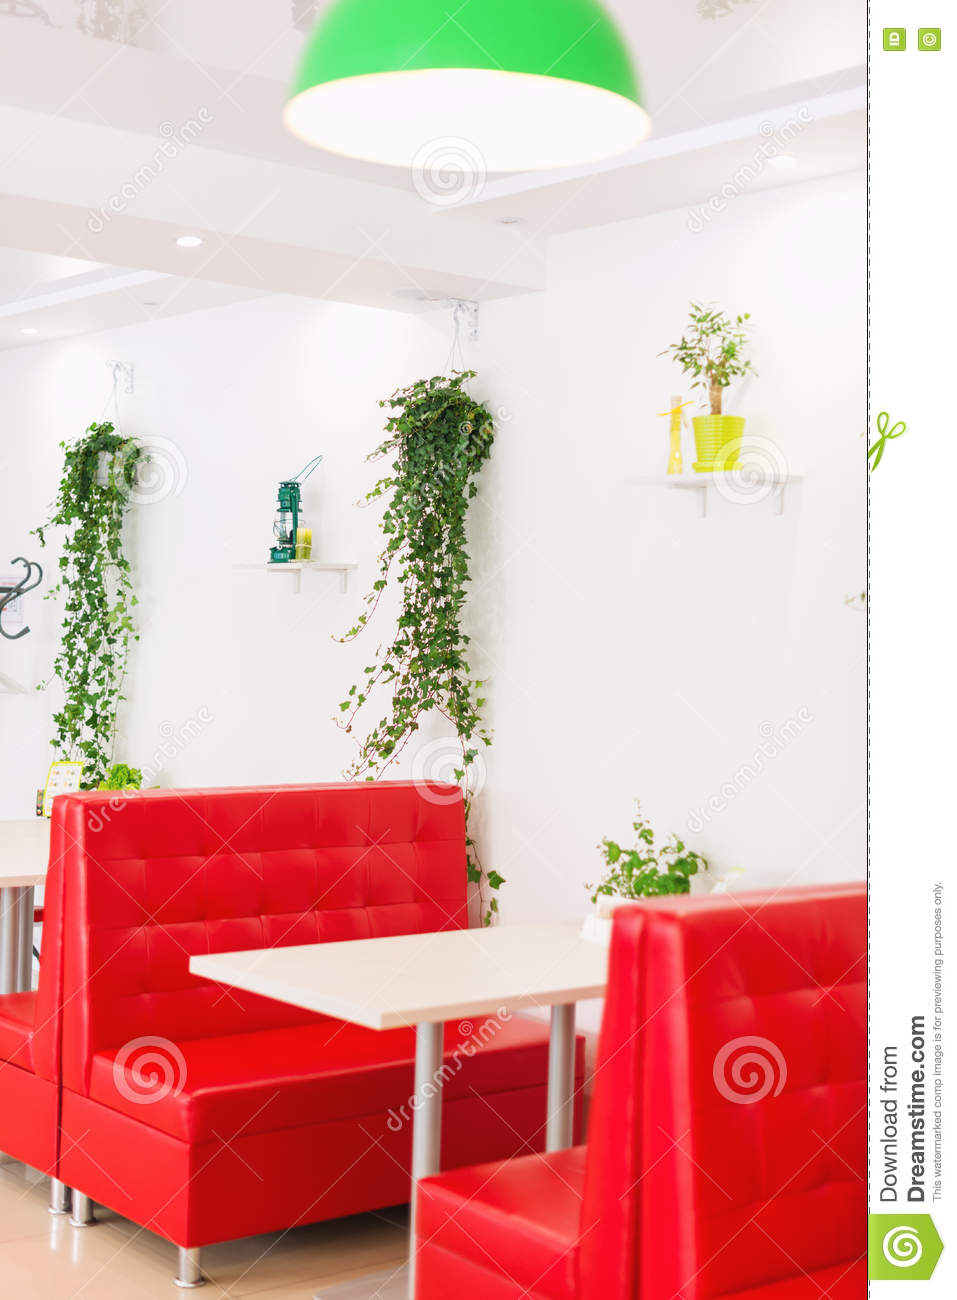 Modern Design Restaurant Interior In White And Red Colors With Plants Stock Photo Image Of Coffee Drink 73684616